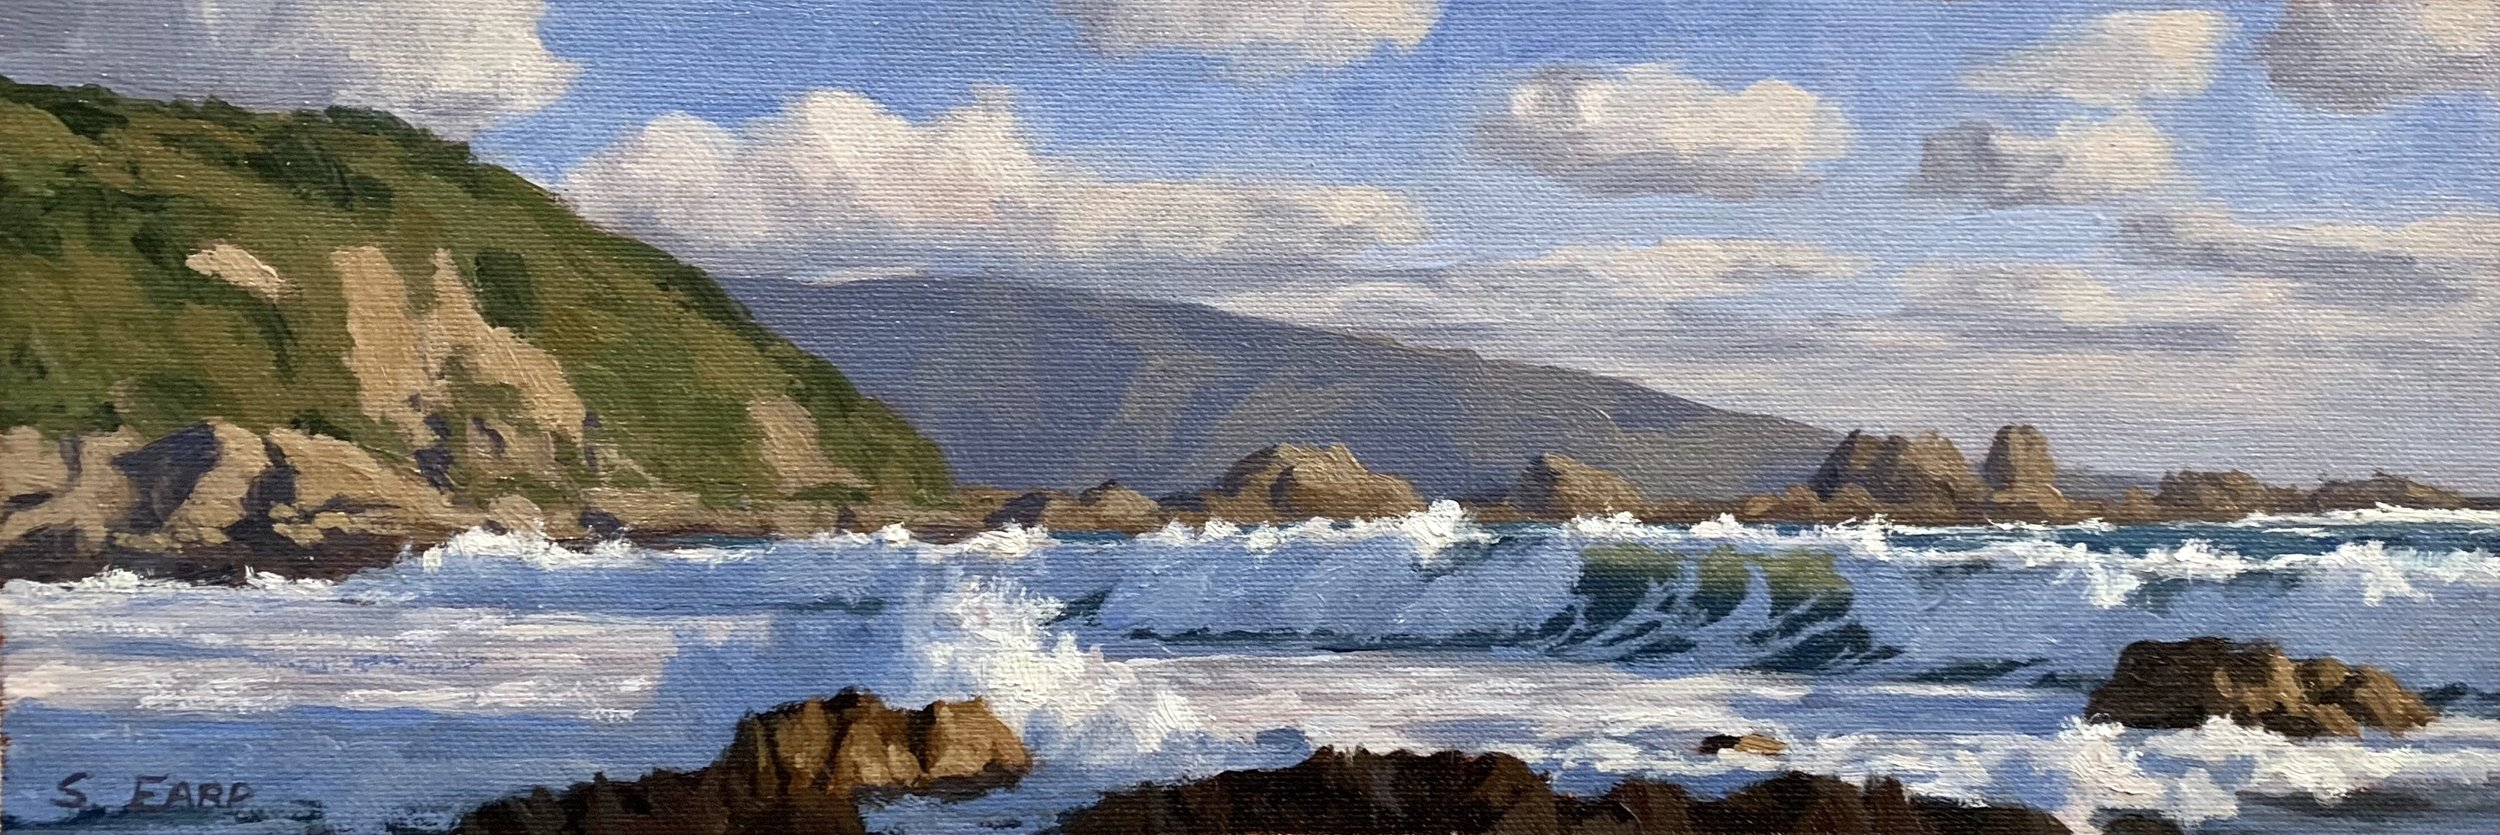 Houghton Bay - oil painting - Samuel Earp copy.JPG